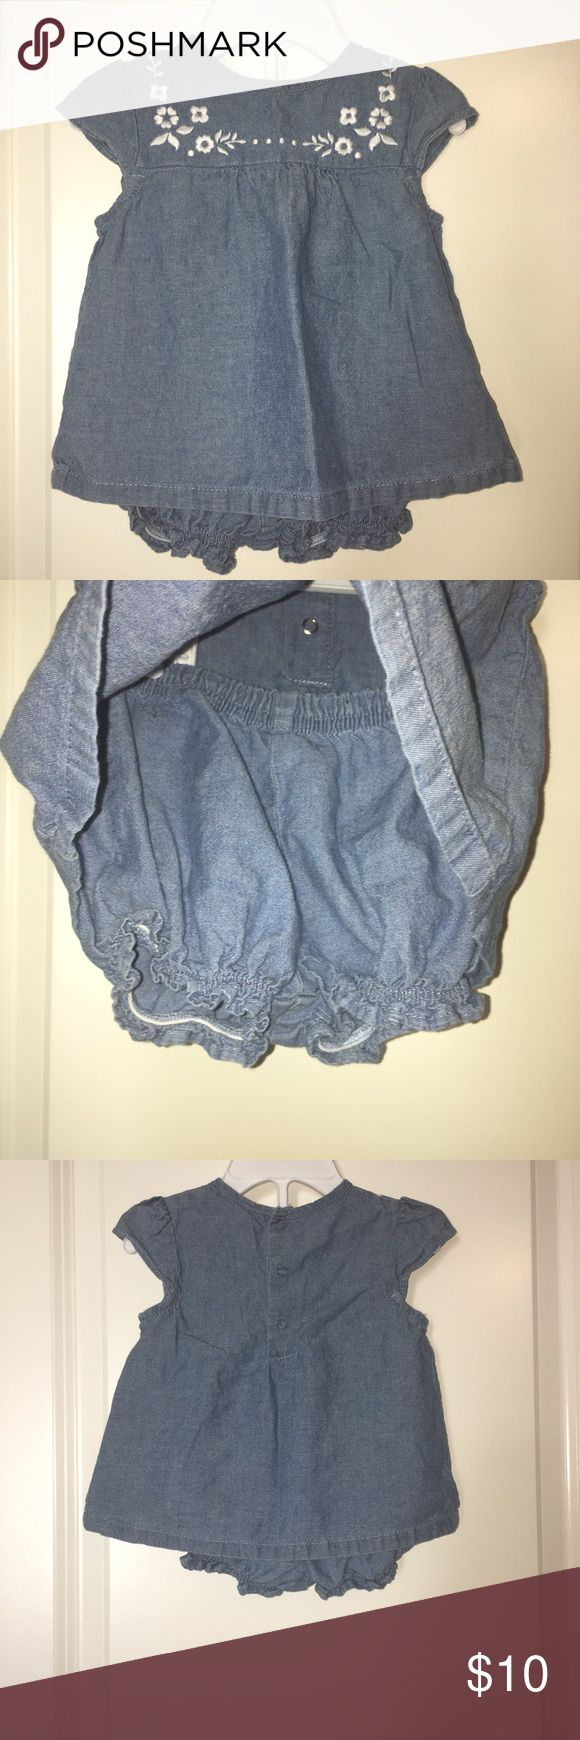 Carter's Chambray Outfit Very cute chambray outfit. Top has white embroidered flowers. Used each piece with so many different outfits. In very good used condition. Smoke free home. Carter's Matching Sets